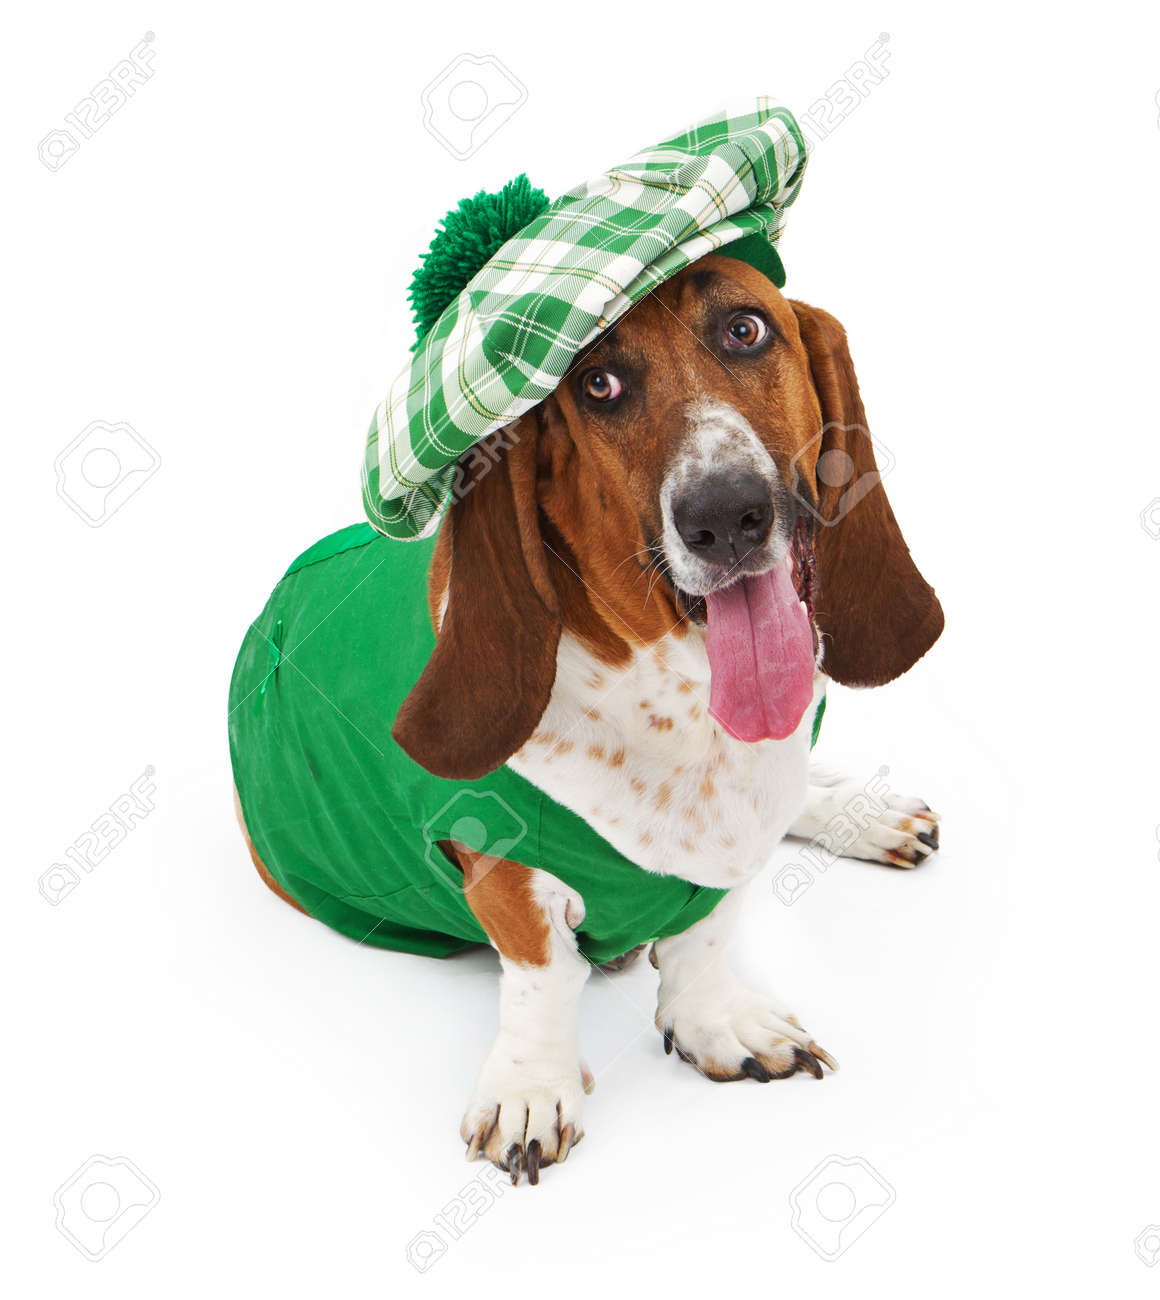 A Funny Basset Hound Dog Dressed For St Patrick S Day With A Stock Photo Picture And Royalty Free Image Image 36094085